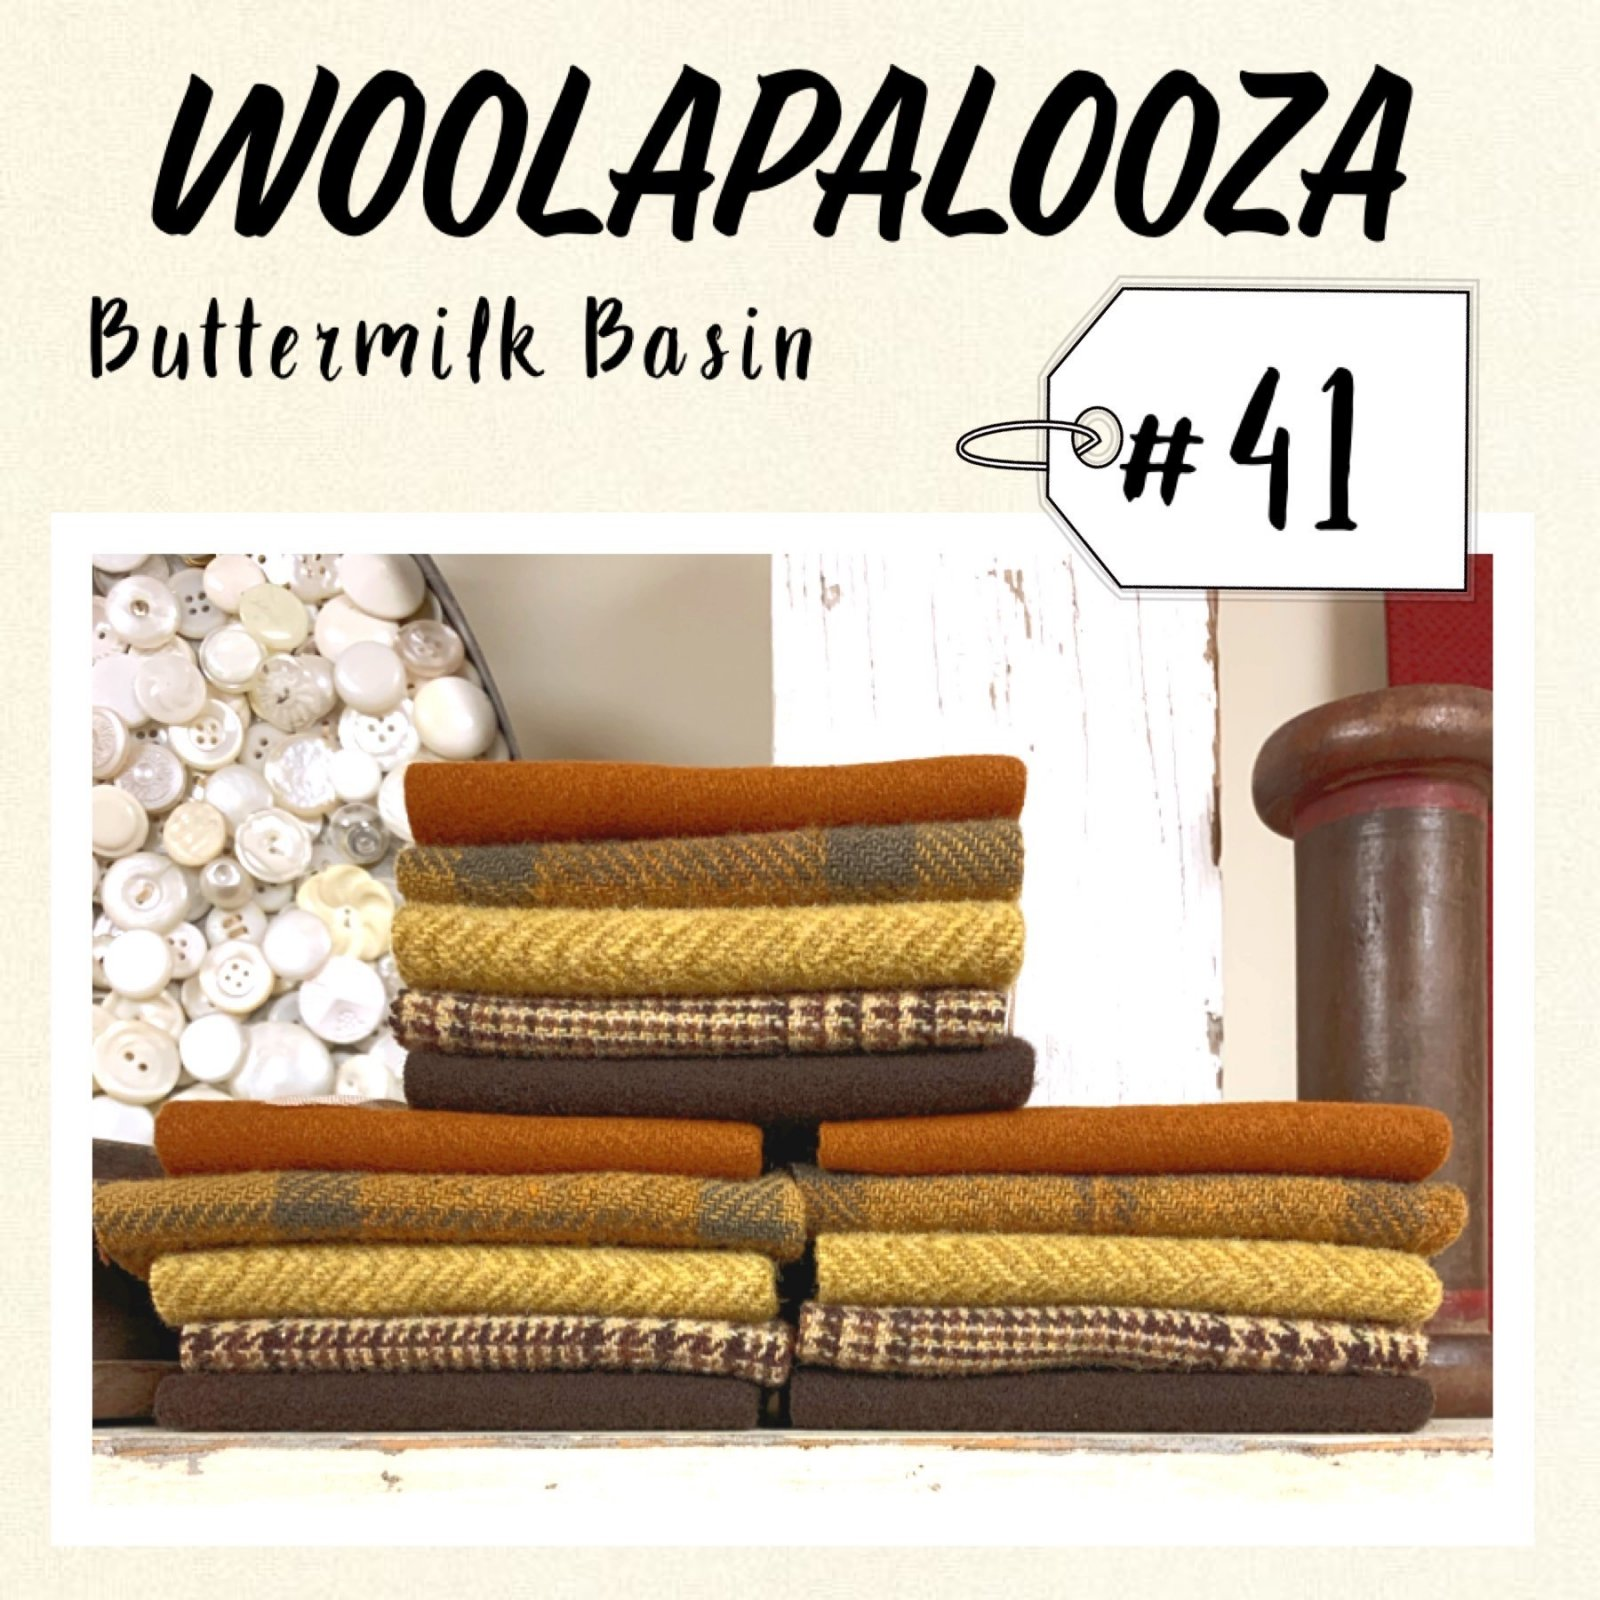 Woolapalooza #41 Wool Bundle